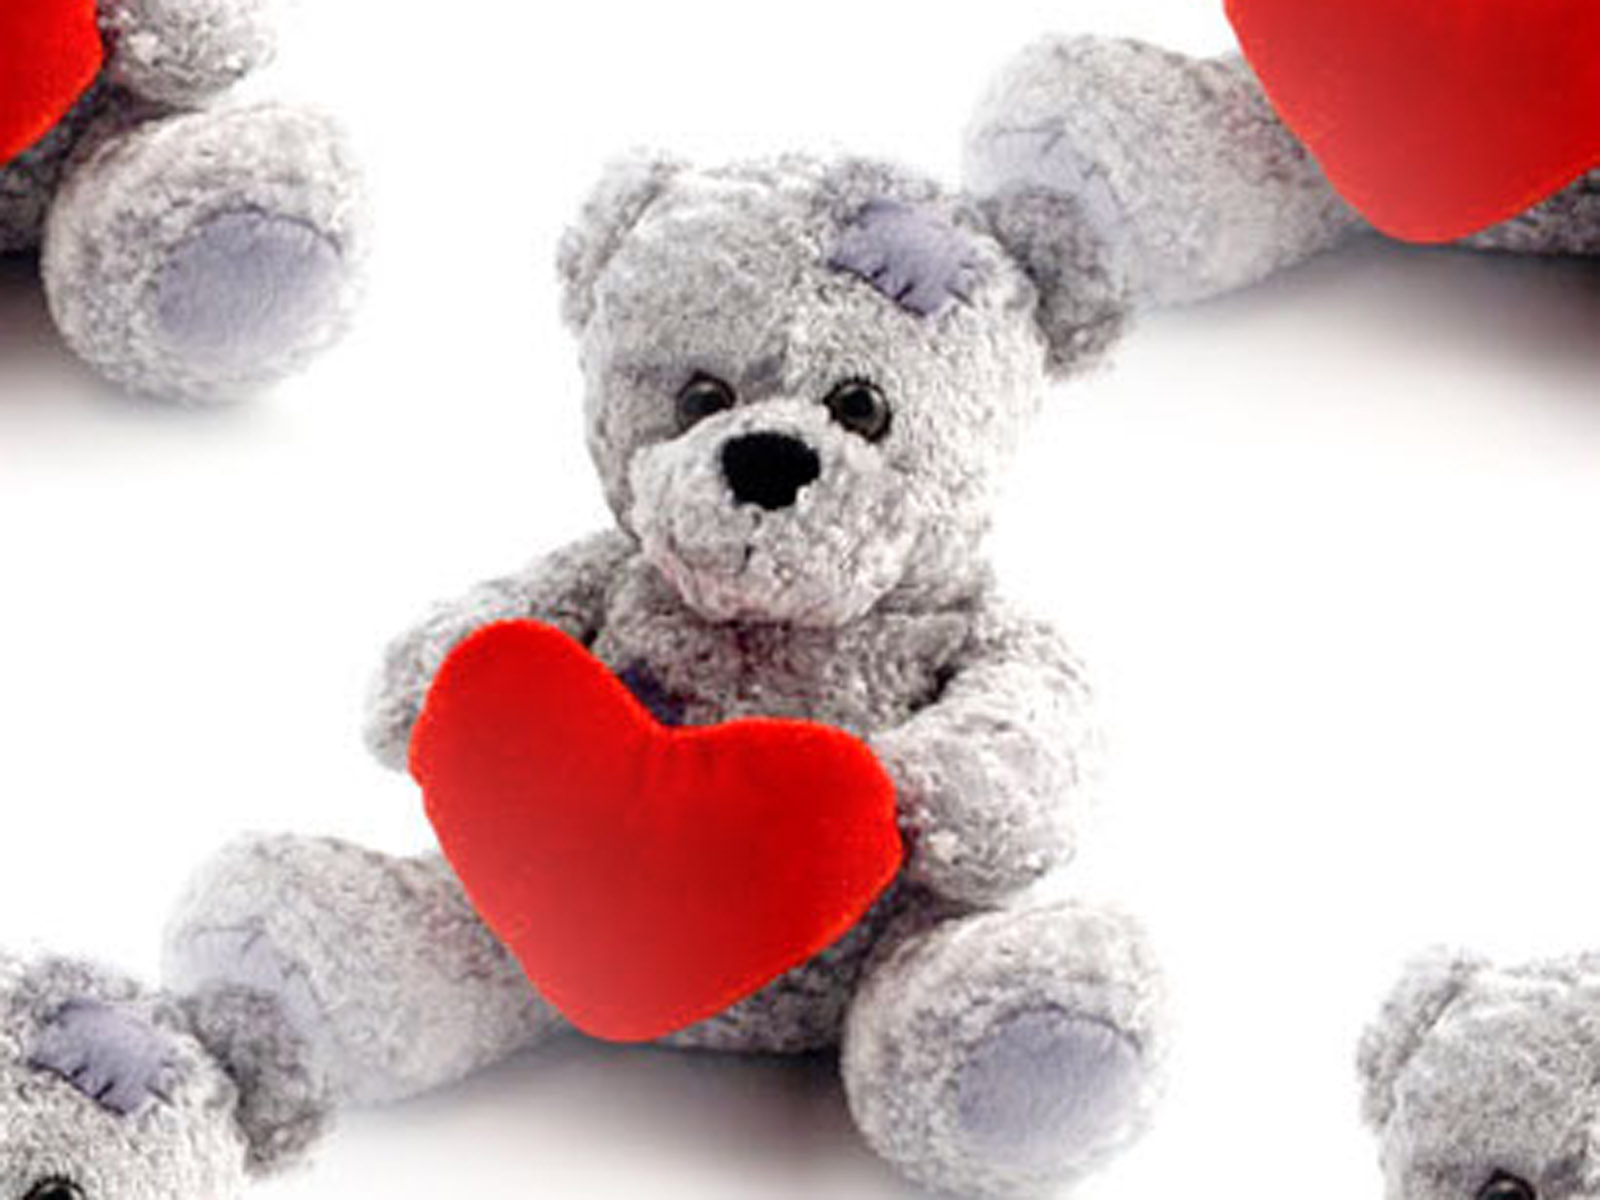 Love Teddy Bear Wallpapers ~ HD Wallpapers